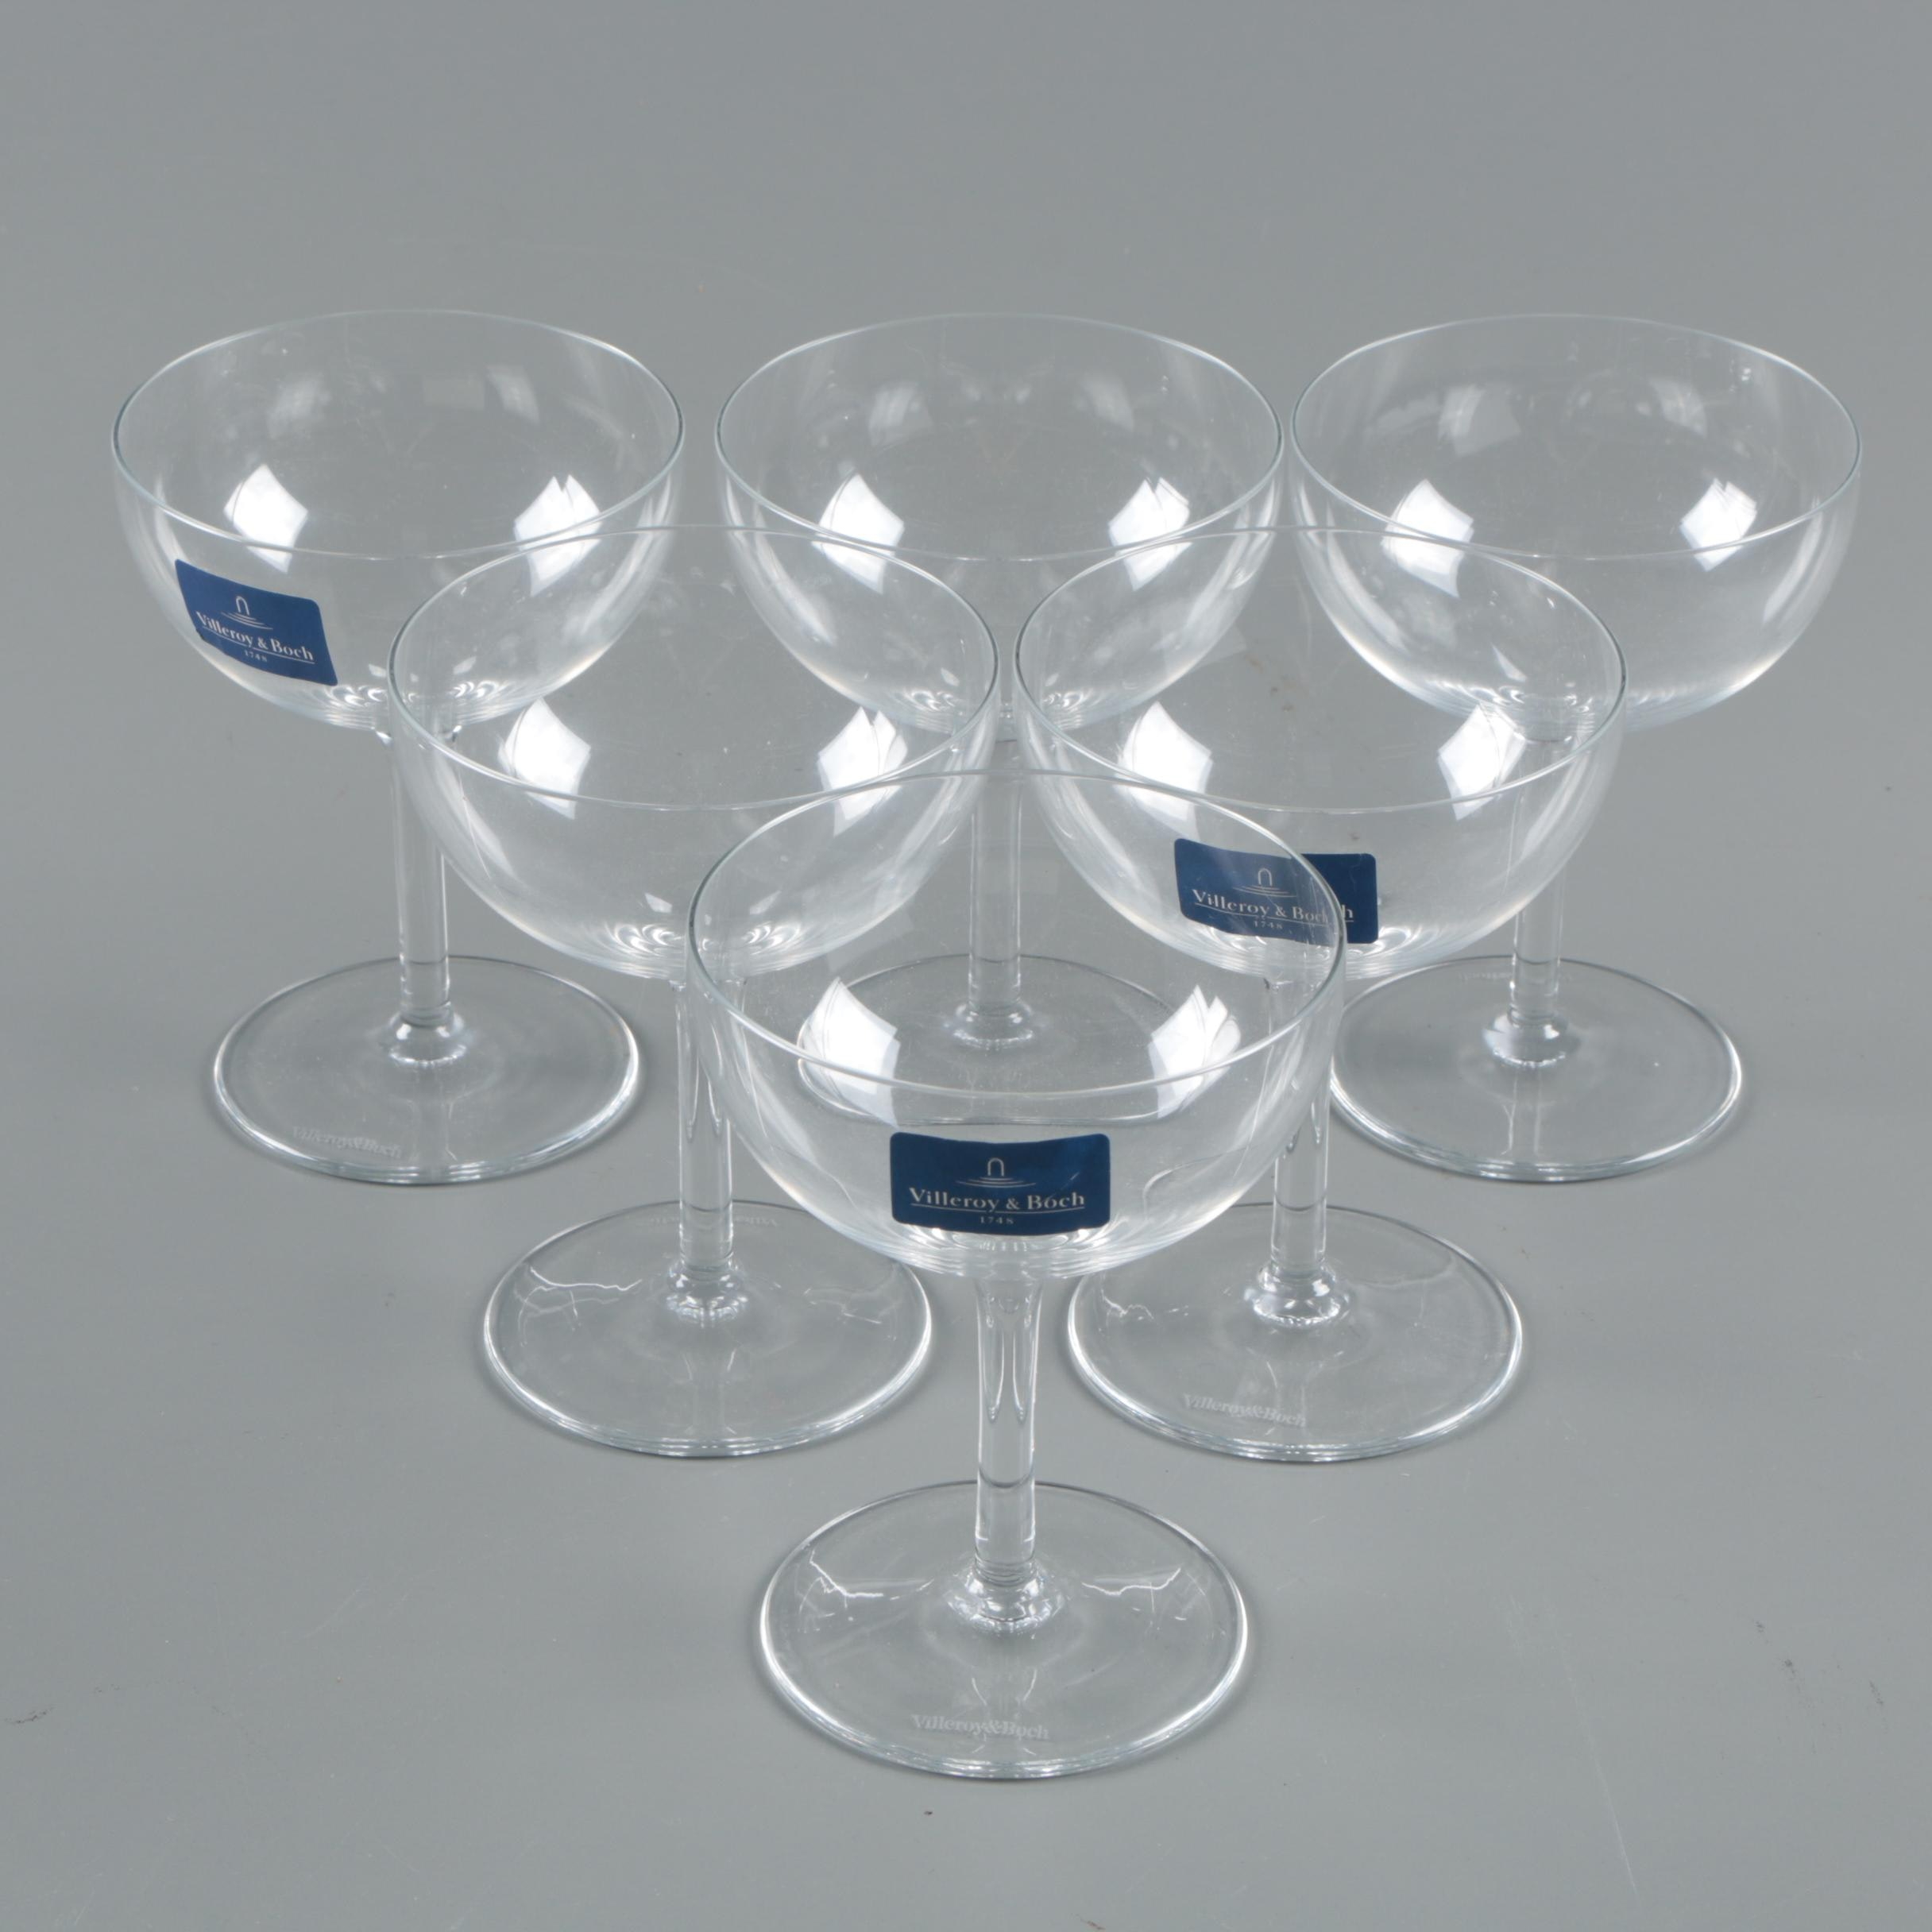 Villeroy & Boch Crystal Champagne Coupe Glasses